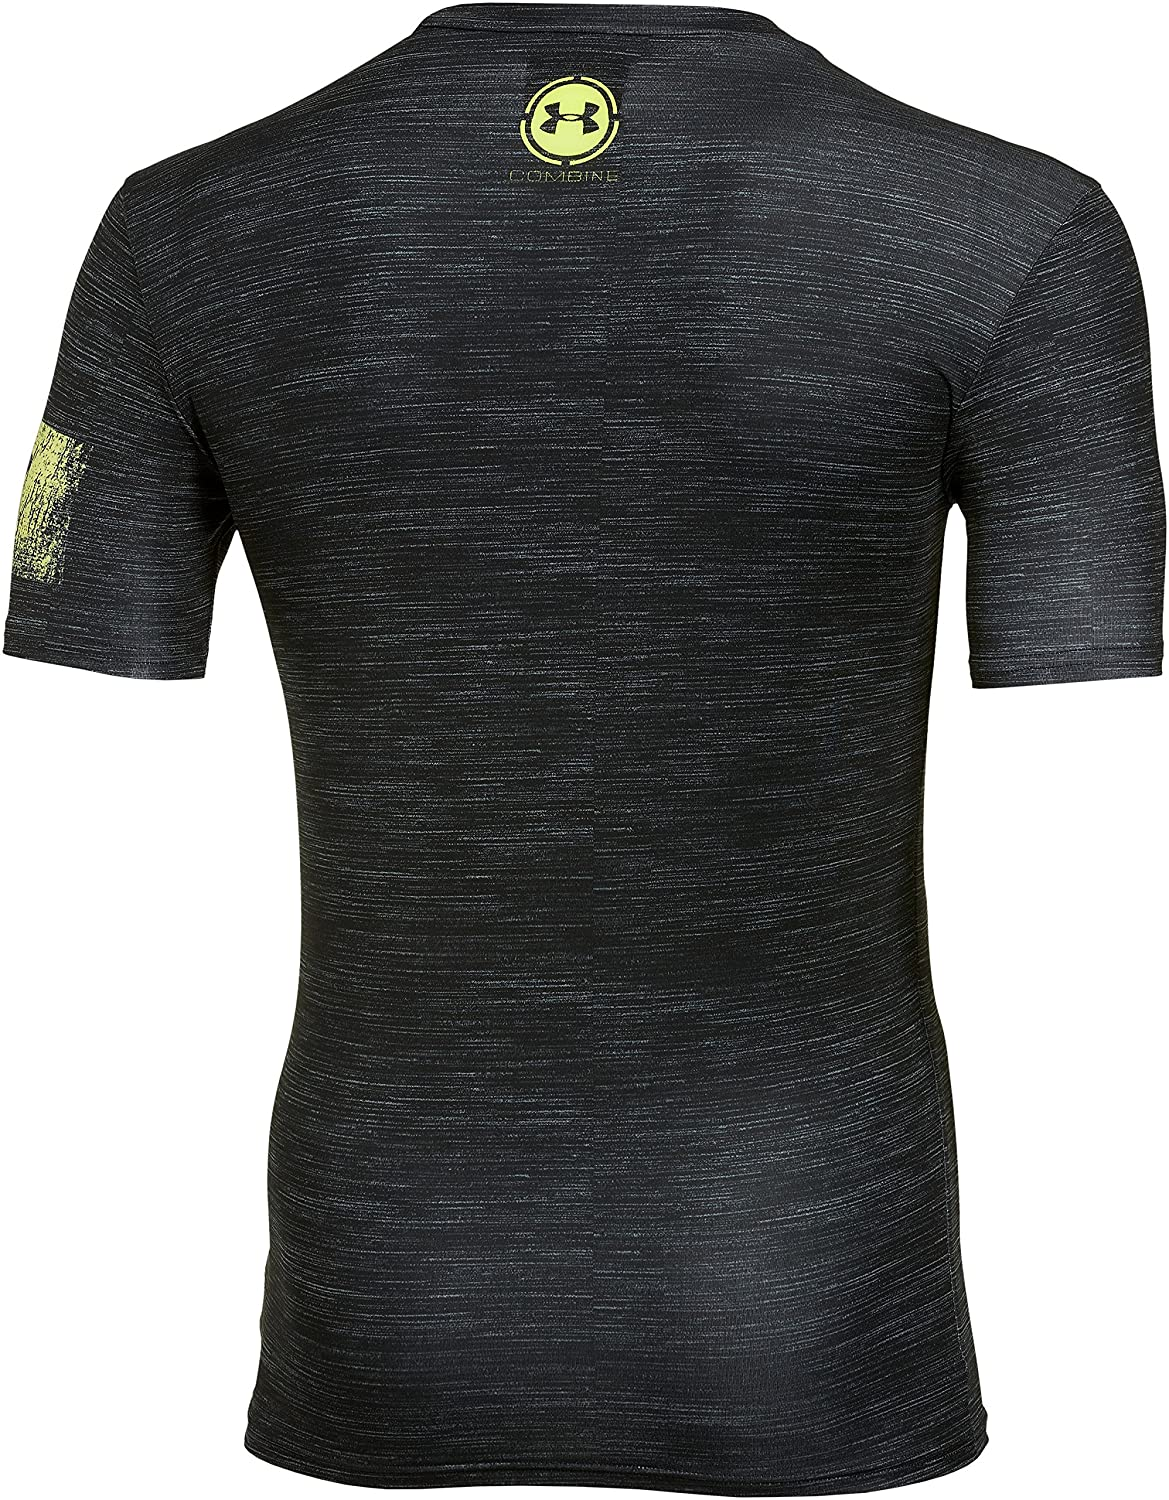 Amazon.com : Under Armour Mens UA Combine Training Lightning Fist Compression T-Shirt Large Black : Sports & Outdoors